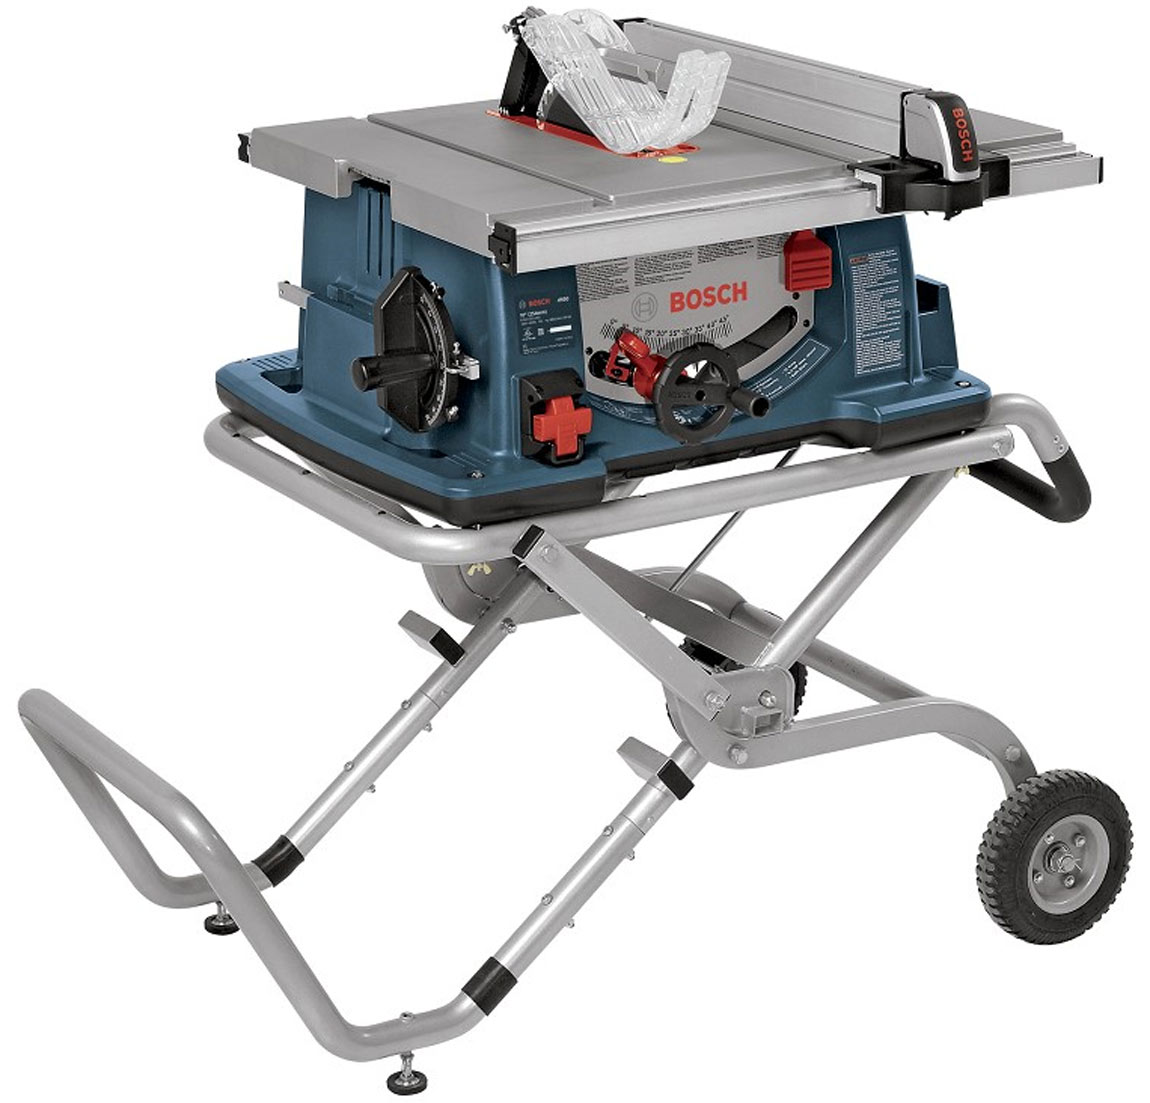 Rockwell 10 Table Saw Review